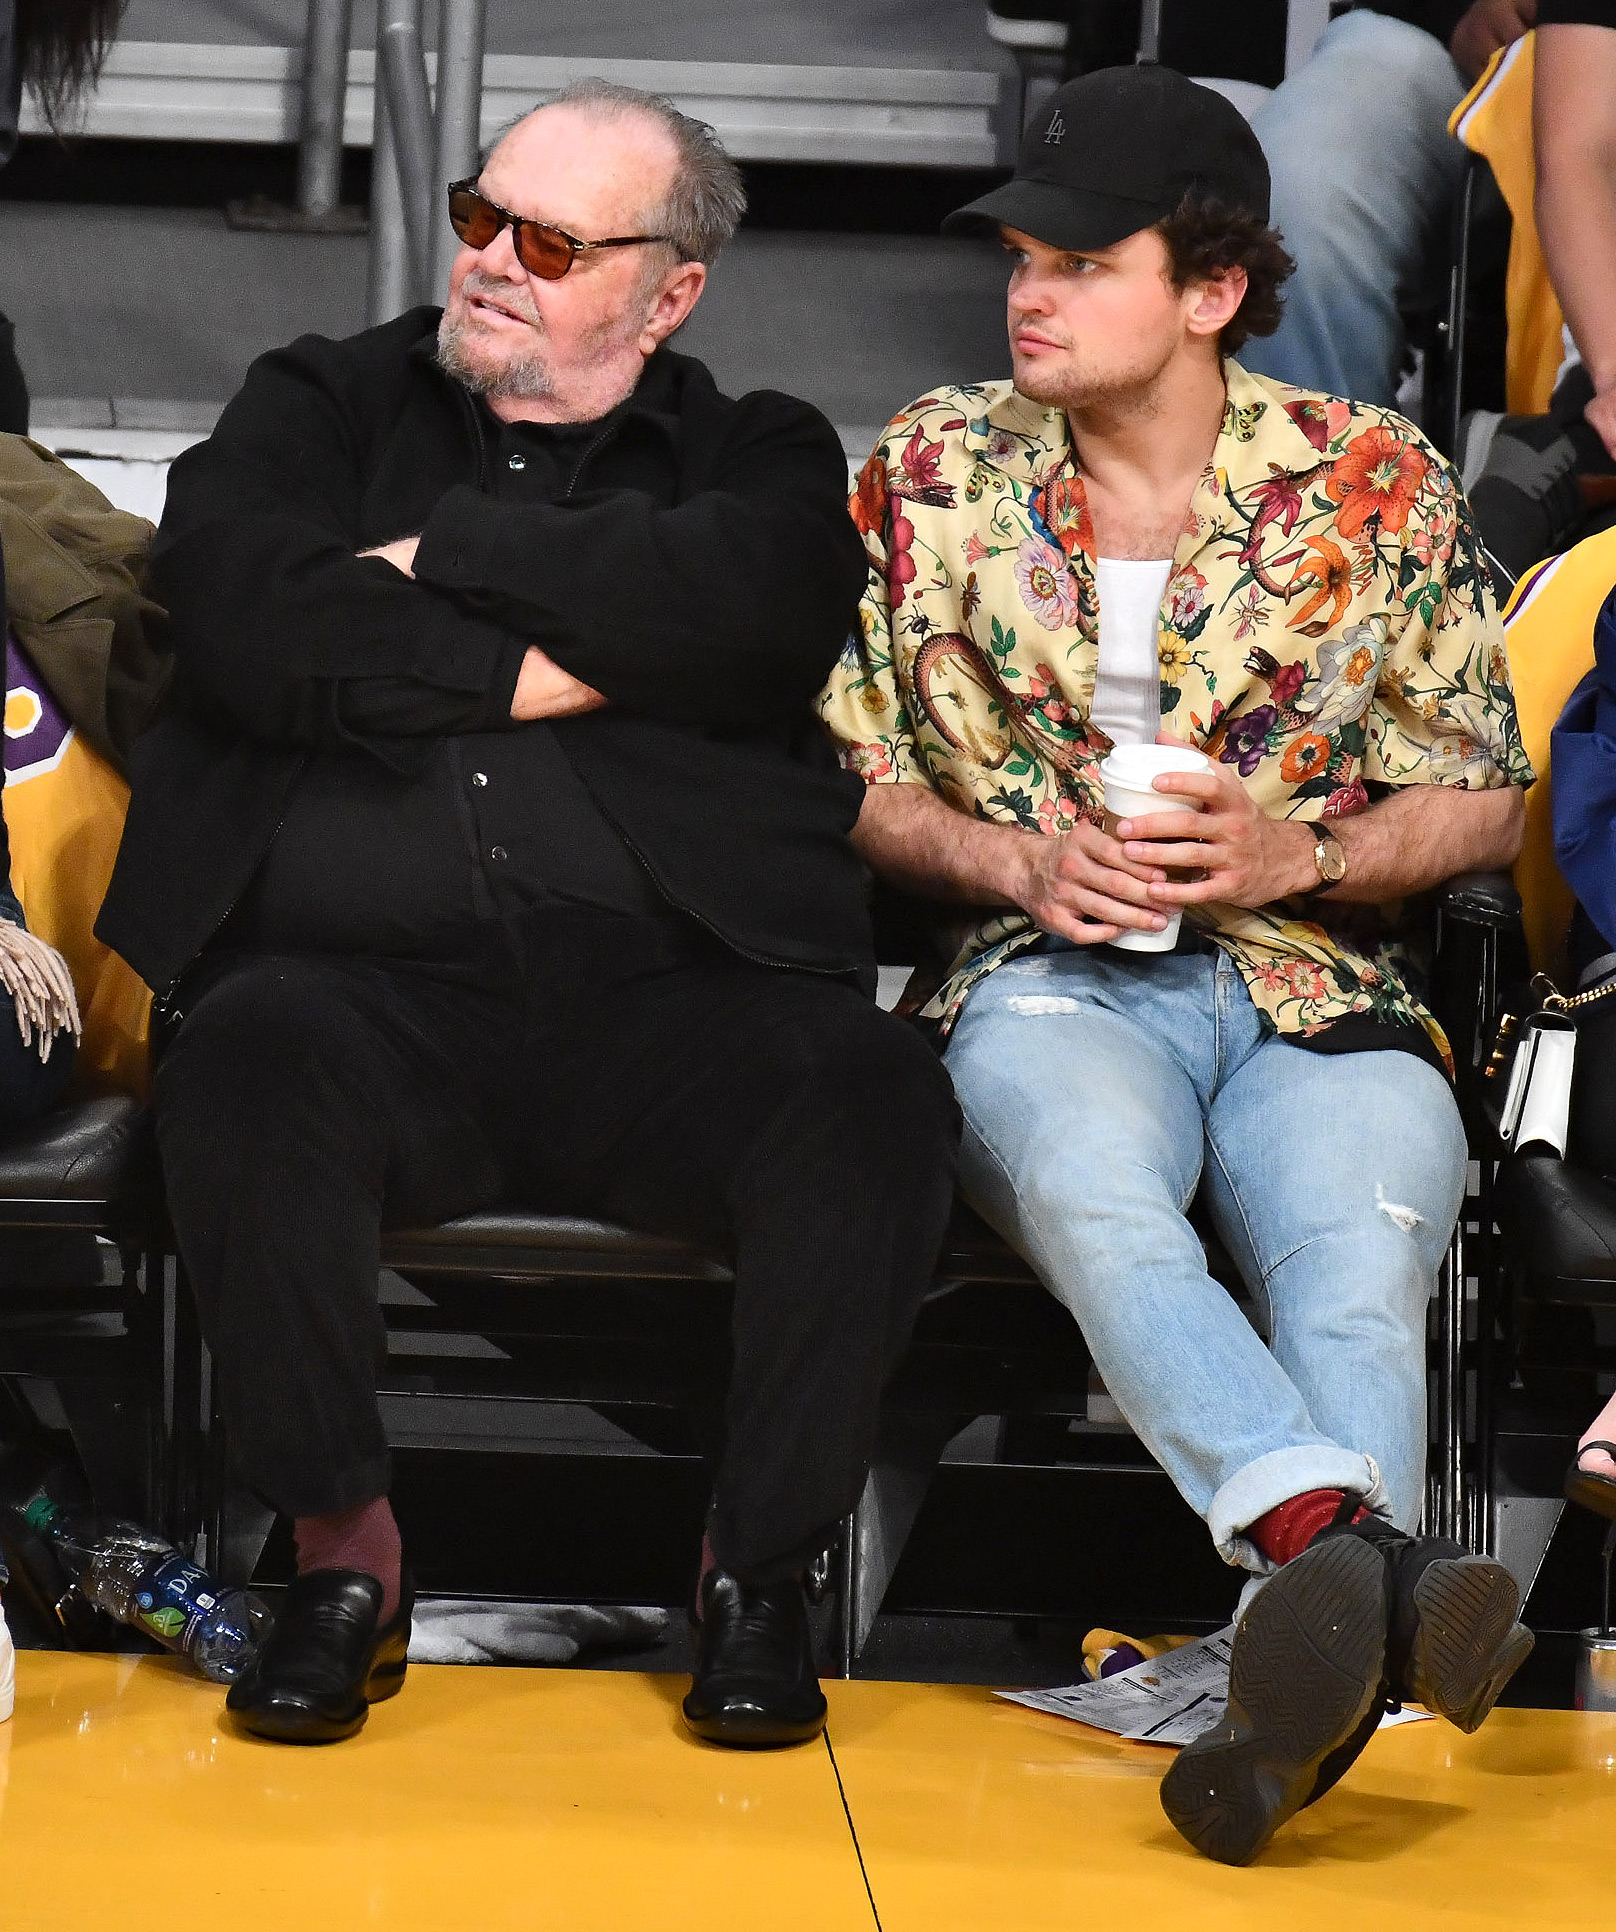 Jack Nicholson Joined By Son Ray As He Watches His Favorite Team Lose People Com The longtime actor, 81, took his nicholson is rarely seen at public events — he was last spotted at a lakers' game in november, again accompanied his i'm mentoring him, sutter said of ray, whose mother is rebecca broussard, 56. https people com movies jack nicholson son ray watch la lakers lose